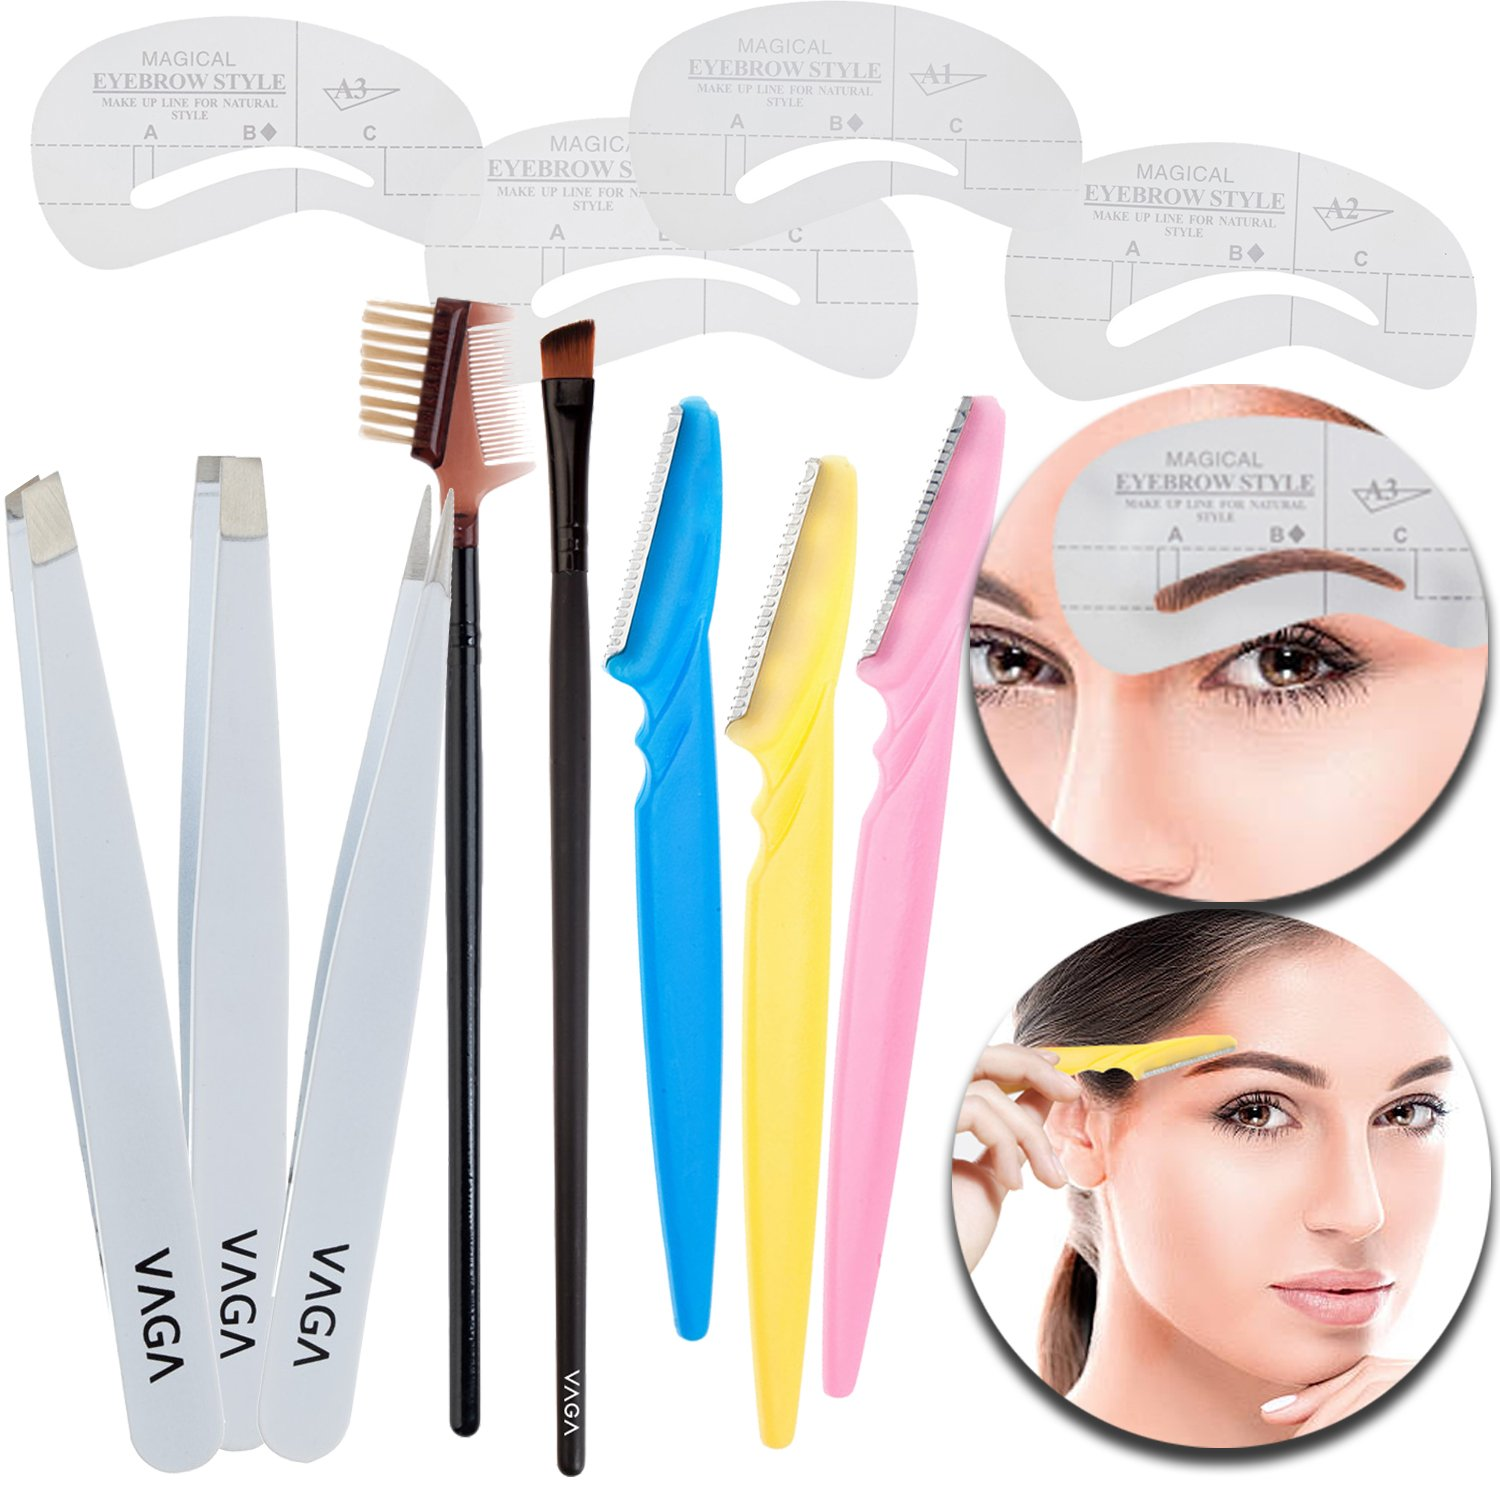 Beauty Make Up Skin Care Tools Set of Eyebrows Razors Shaving Tools Groomers, Precision Tweezers for Hair Removal Plucking, Eyes Brows Stencils Templates Drawing Cards, Brush and Comb for Grooming VAGASHOP